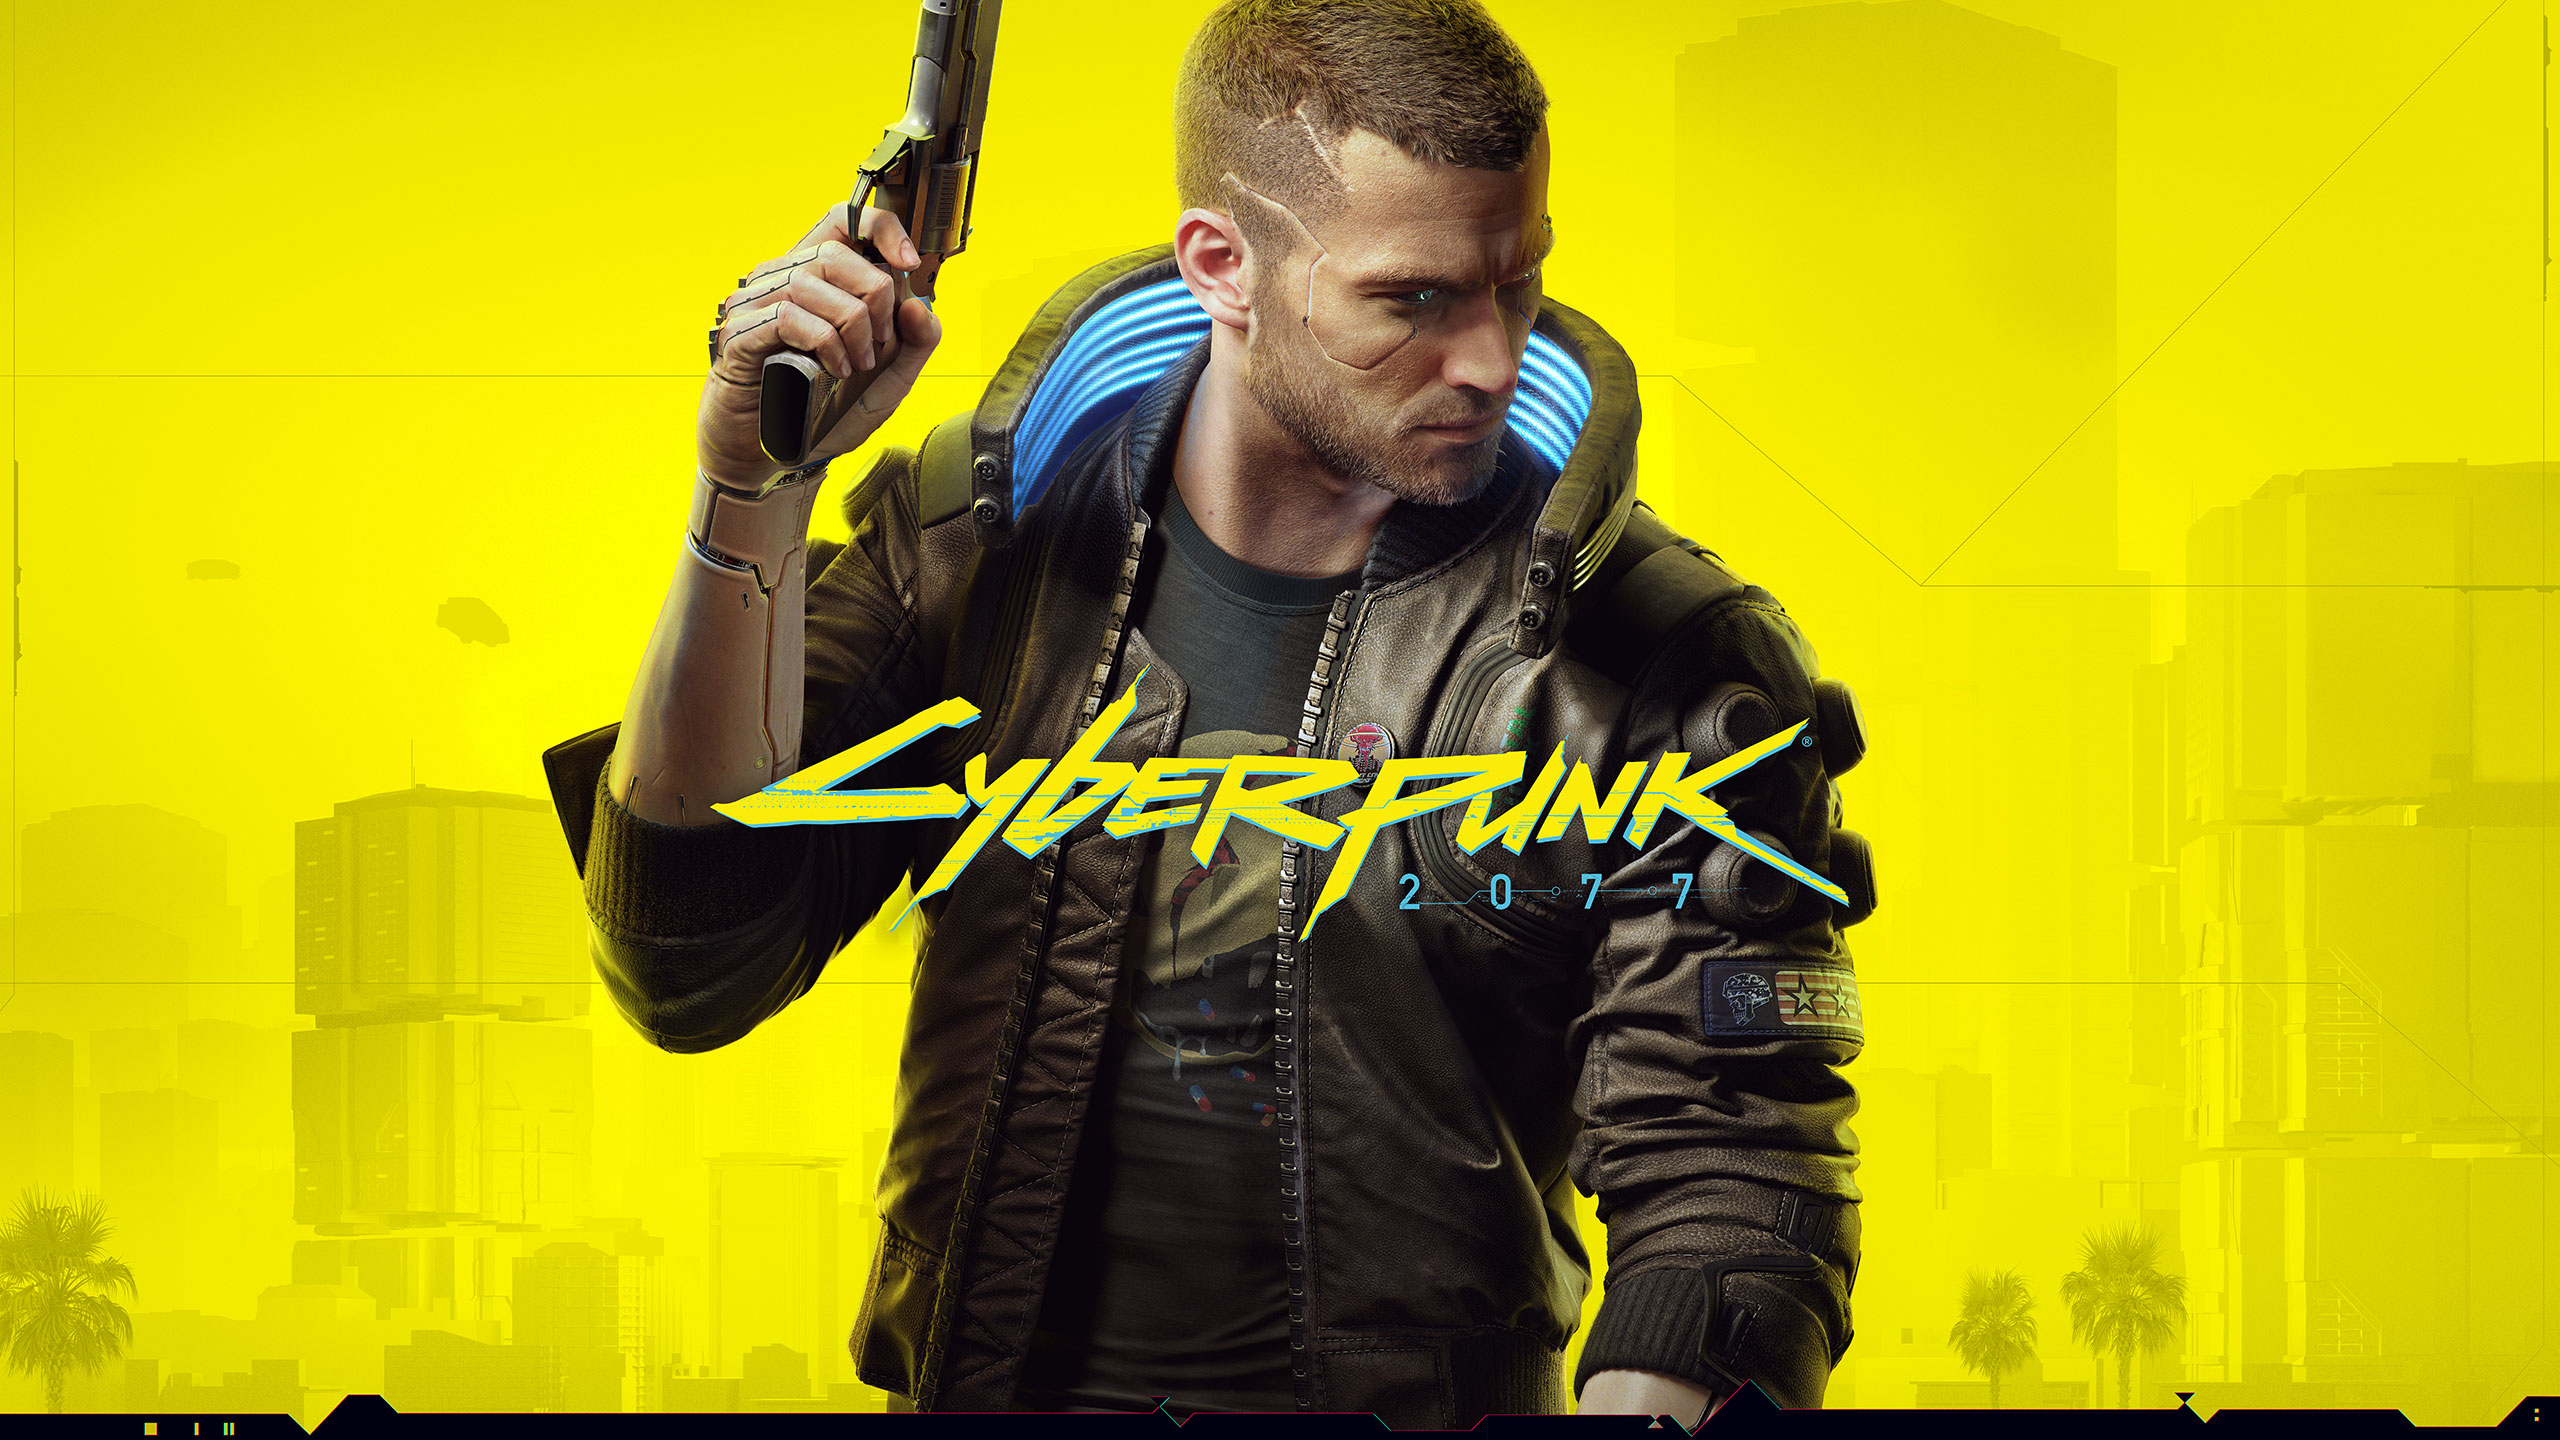 Time for a new big patch for Cyberpunk 2077